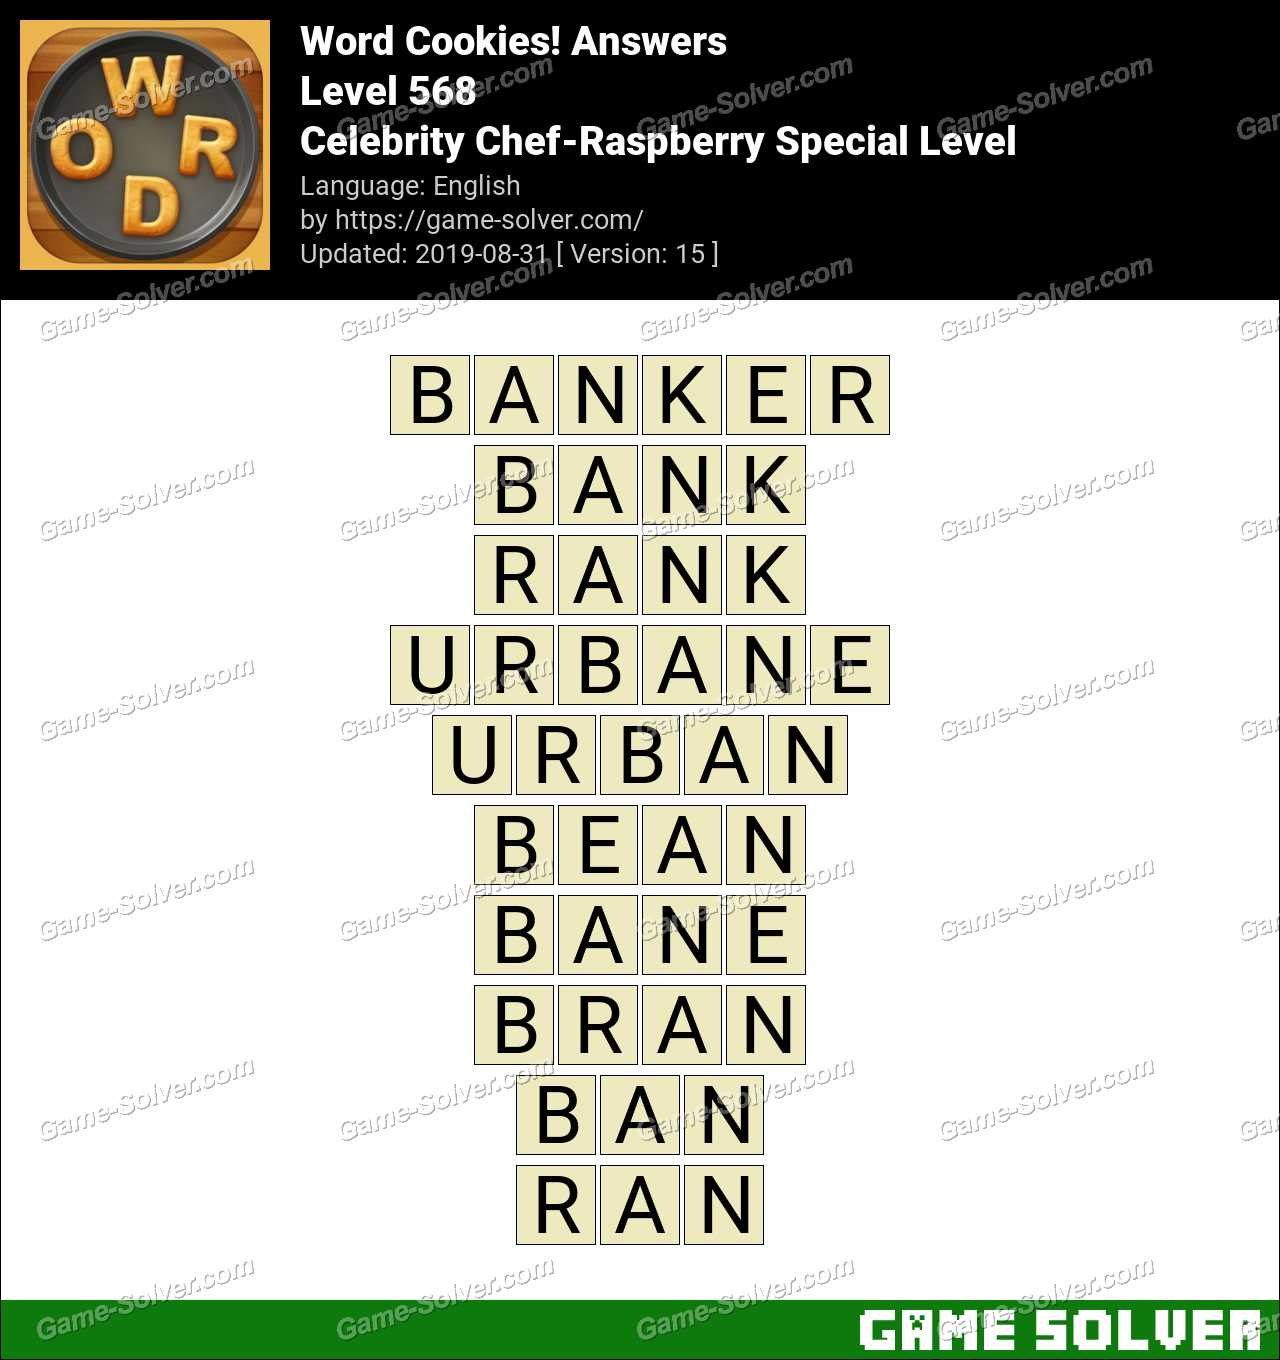 Word Cookies Celebrity Chef-Raspberry Special Level Answers